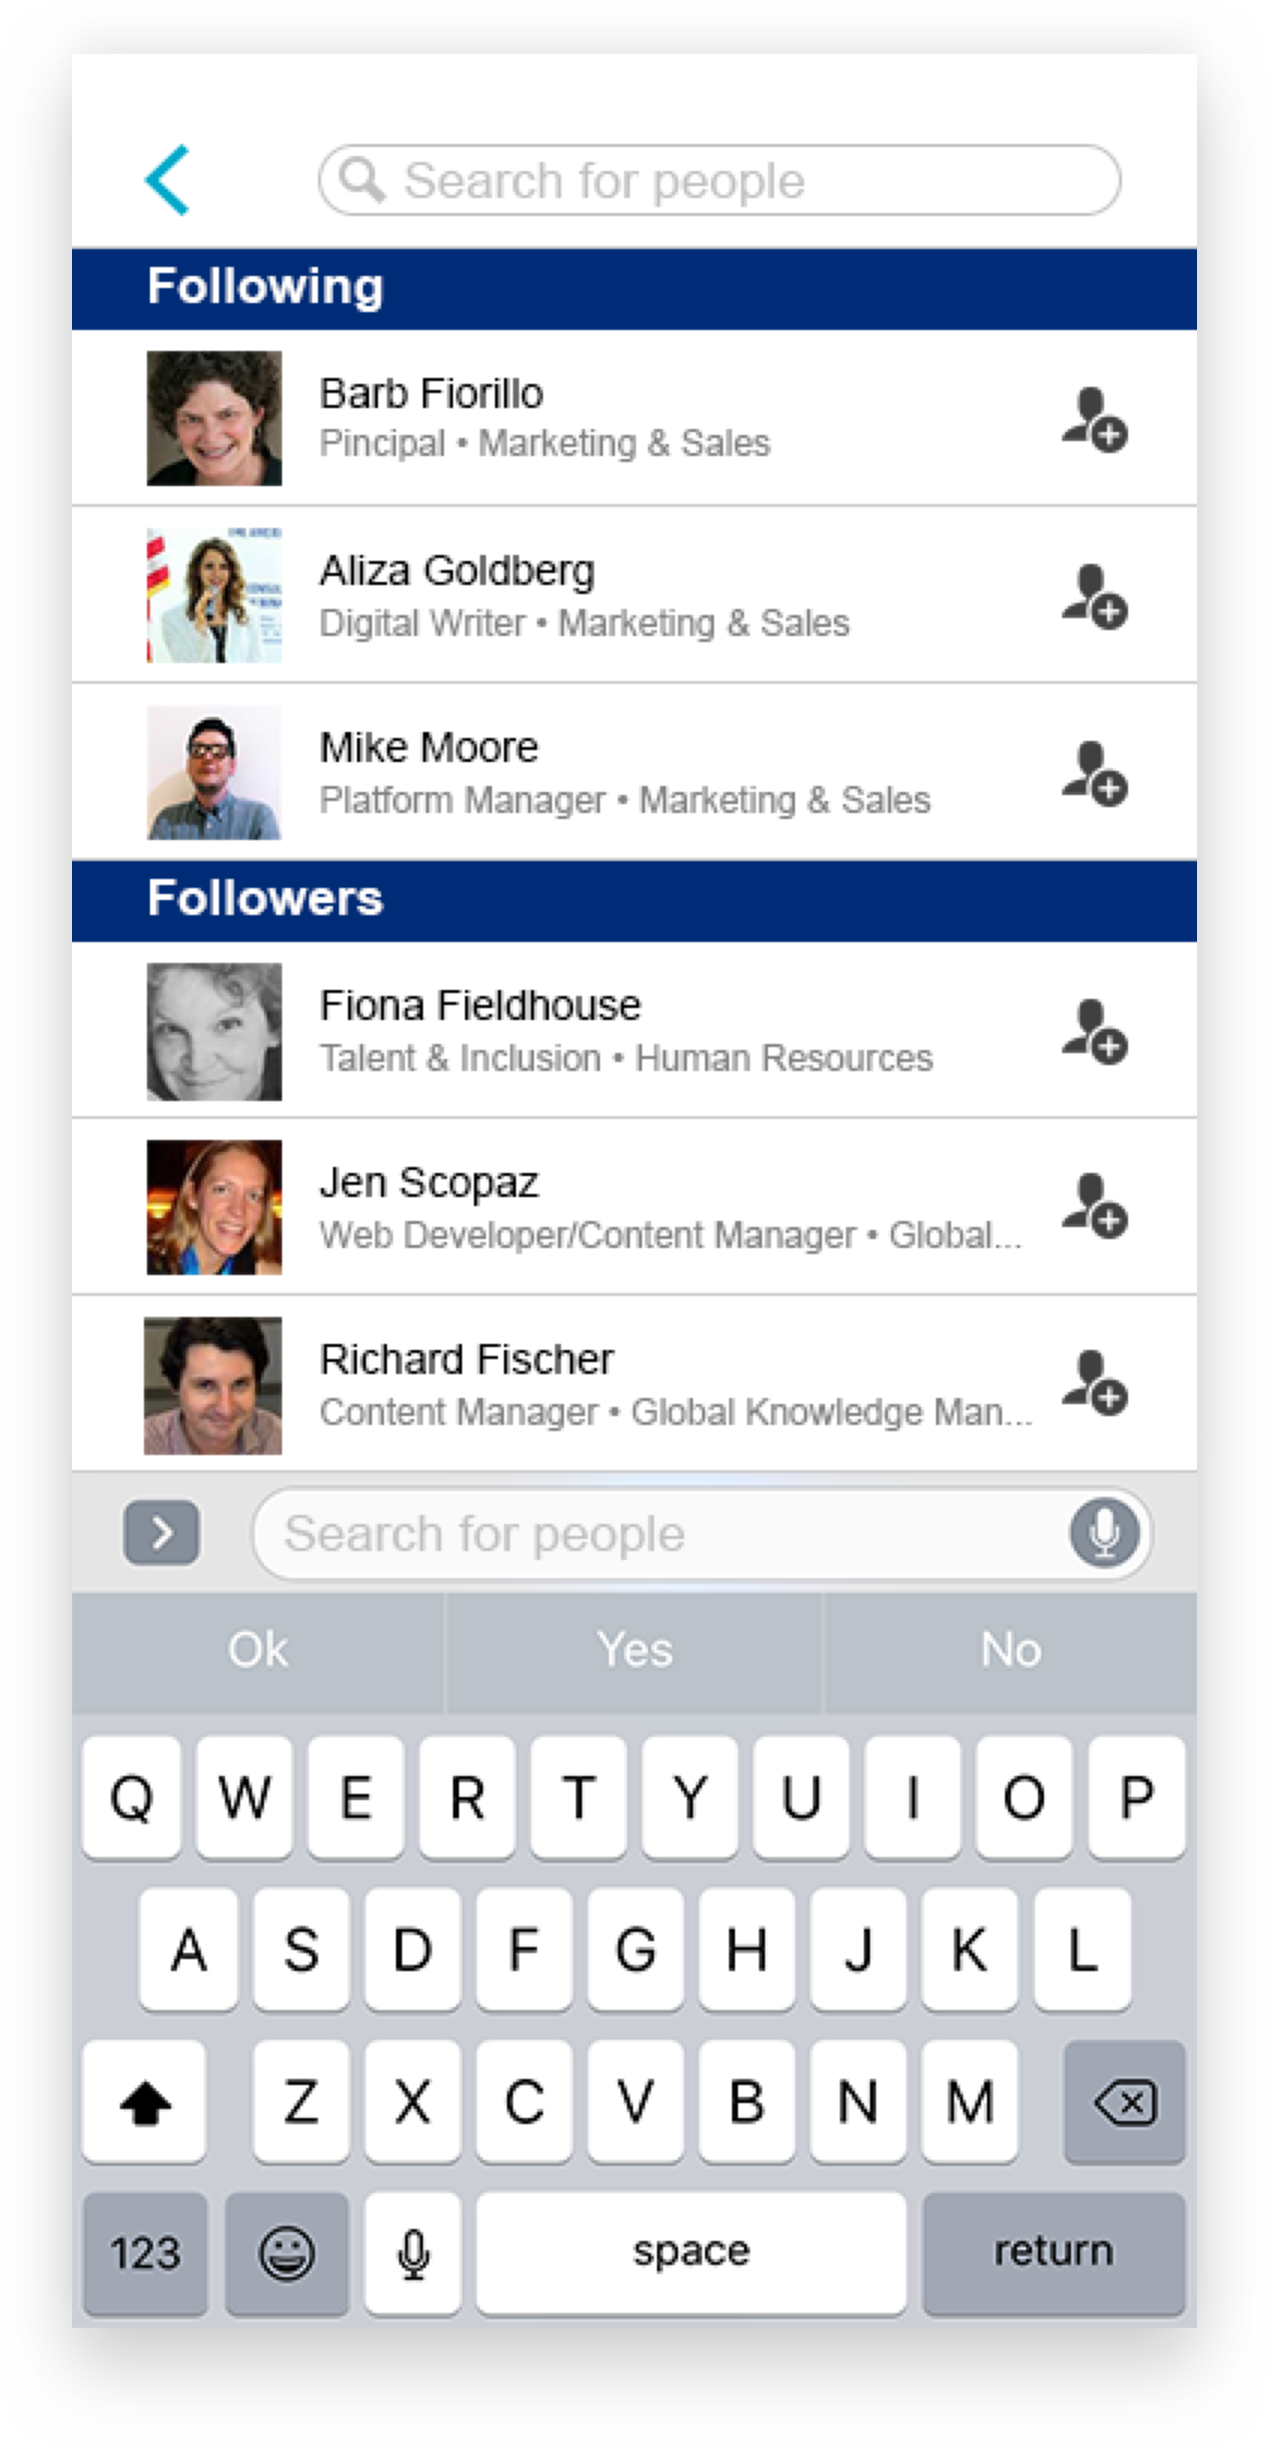 Image 5: a mid-fidelity mockup of an administrative screen that allows a user to see followers and who they are following.